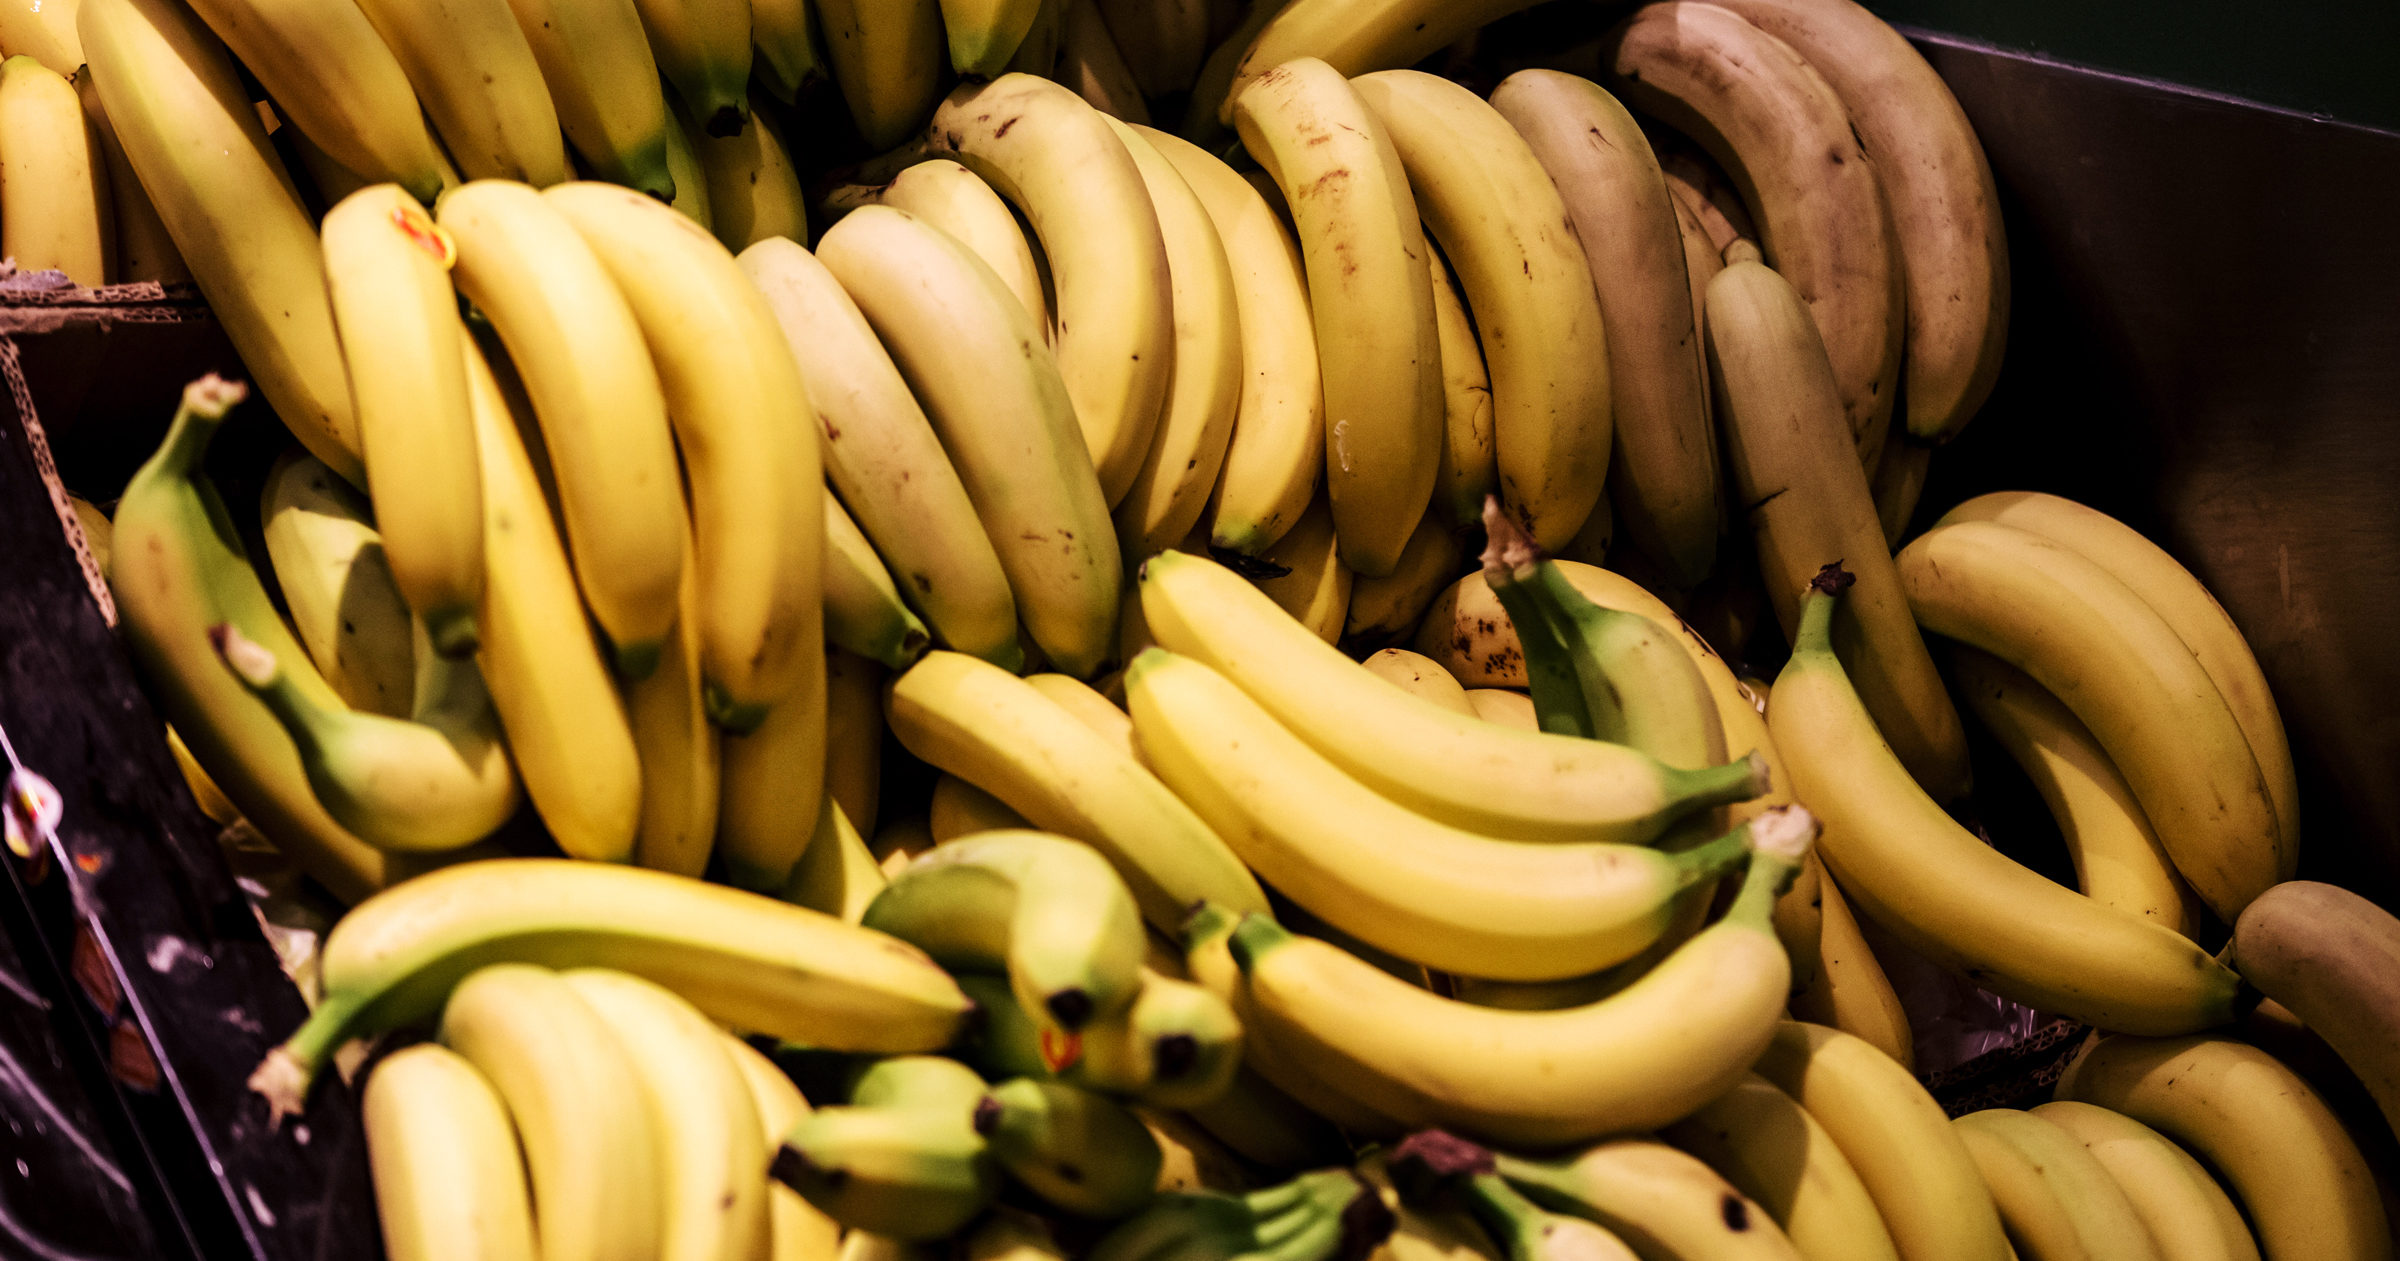 Bananas-hp-615950984-1200x630-e1489449259246